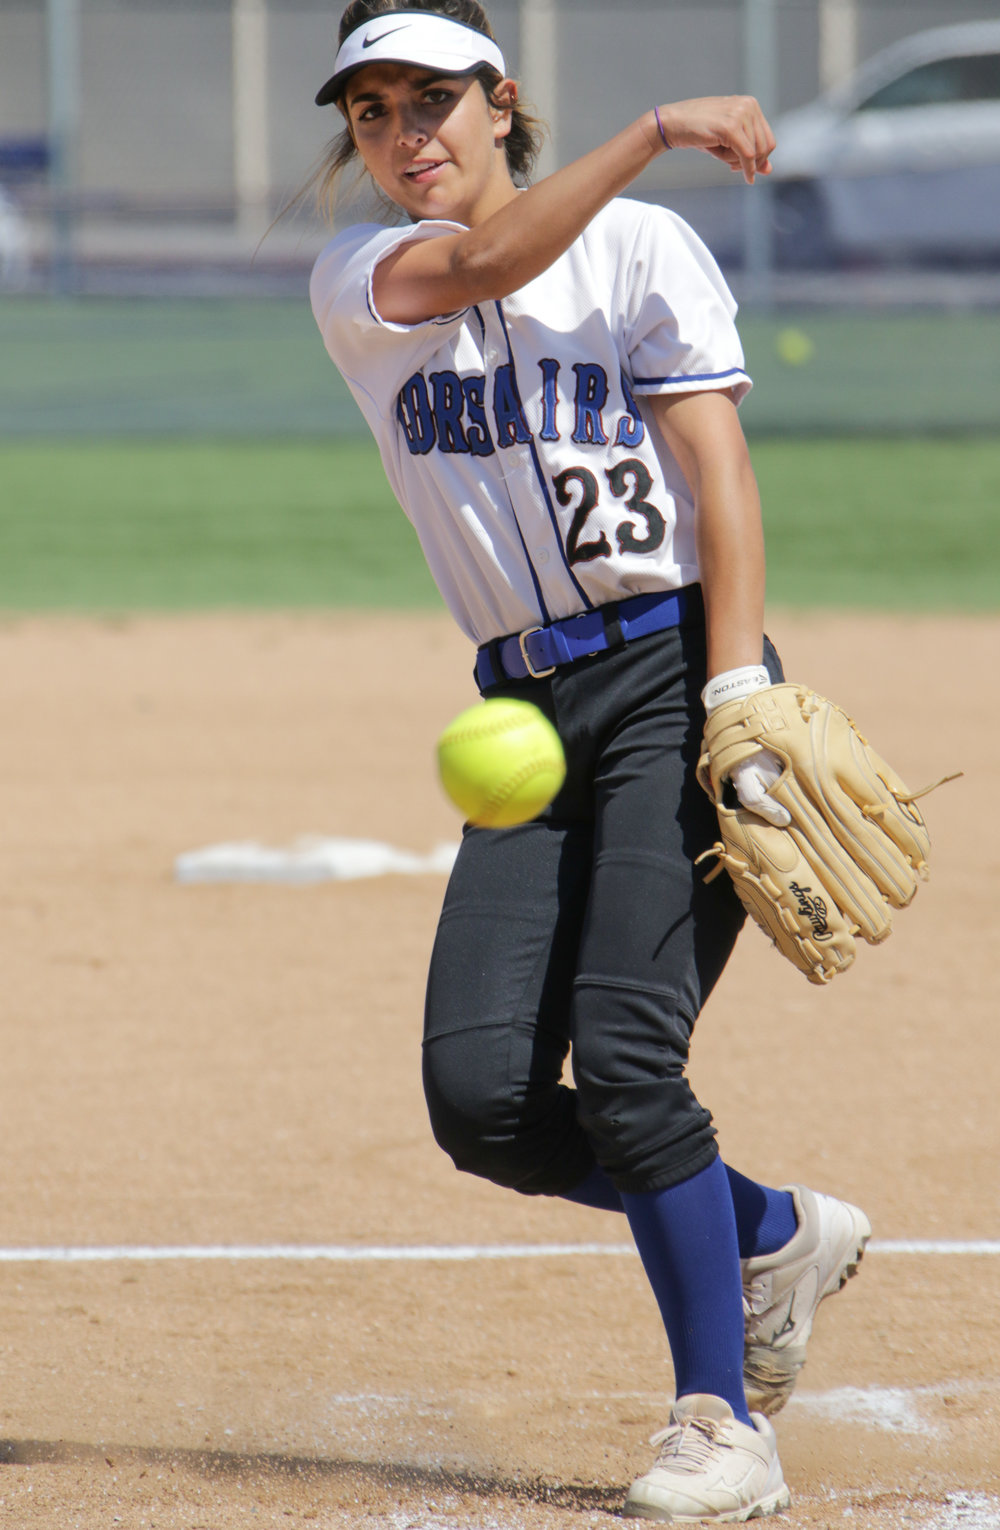 Santa Monica College Corsair softball team pitcher Taylor Liebesman practicing throwing her pitch before the start of a new inning during their game against Oxnard  College on thursday, April 19th, 2018. The game ended 3-2 in favor for Santa Monica College. (Santa Monica, California, Thursday April 19th, 2018) (Ashutosh  Bikram Singh/Corsair Photo)